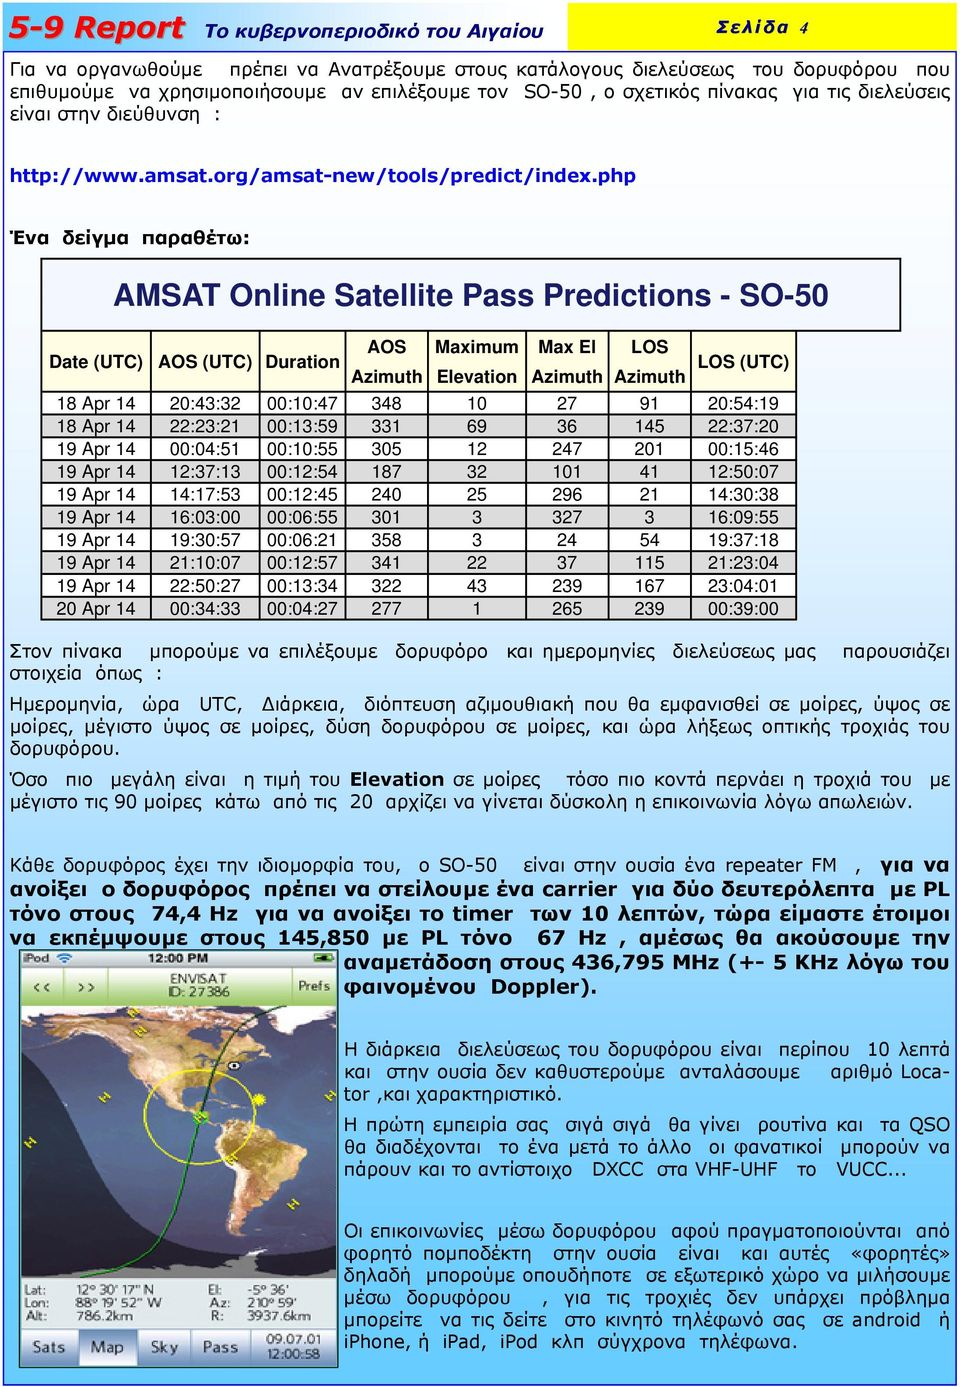 php Ένα δείγµα παραθέτω: AMSAT Online Satellite Pass Predictions - SO-50 Date (UTC) AOS (UTC) Duration AOS Azimuth Maximum Elevation Max El Azimuth LOS LOS (UTC) Azimuth 18 Apr 14 20:43:32 00:10:47